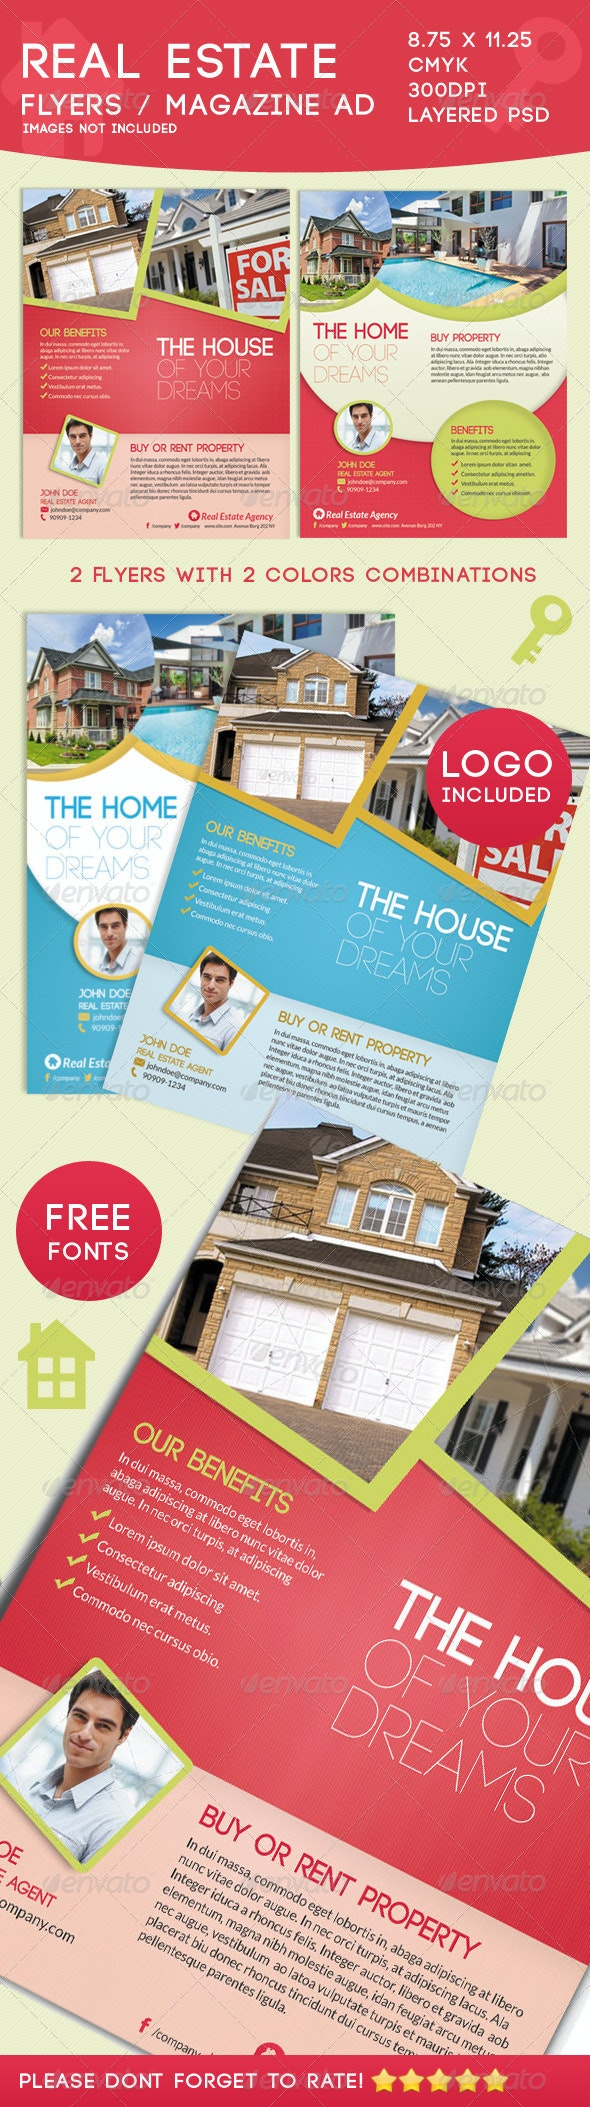 Real Estate Flyers - Corporate Flyers